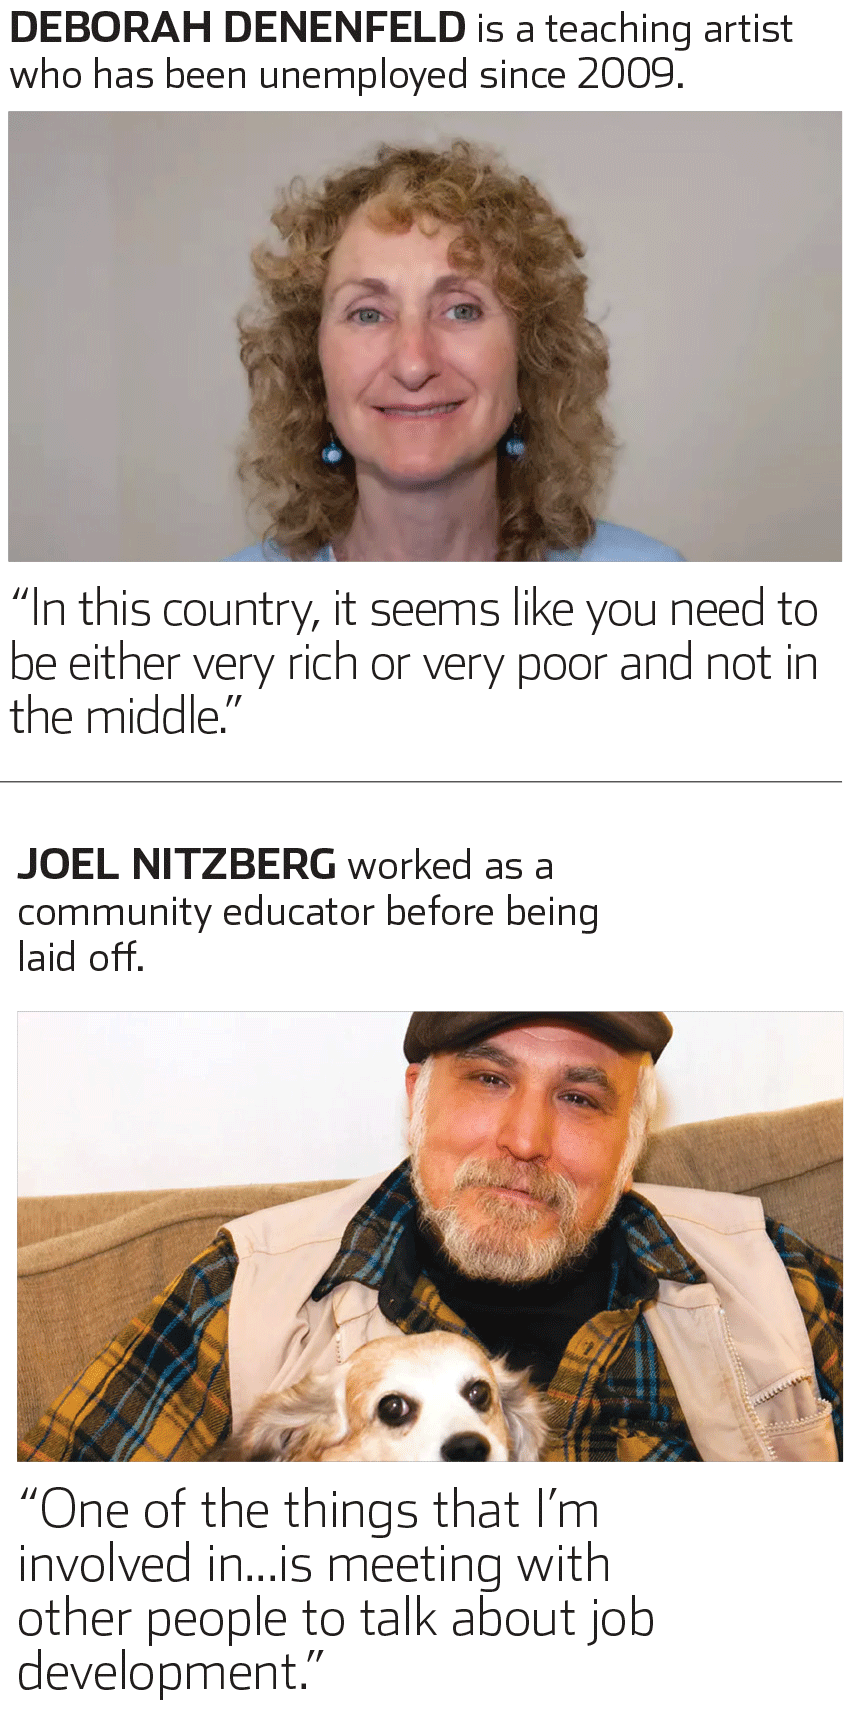 Unemployed workers over 50 share their stories